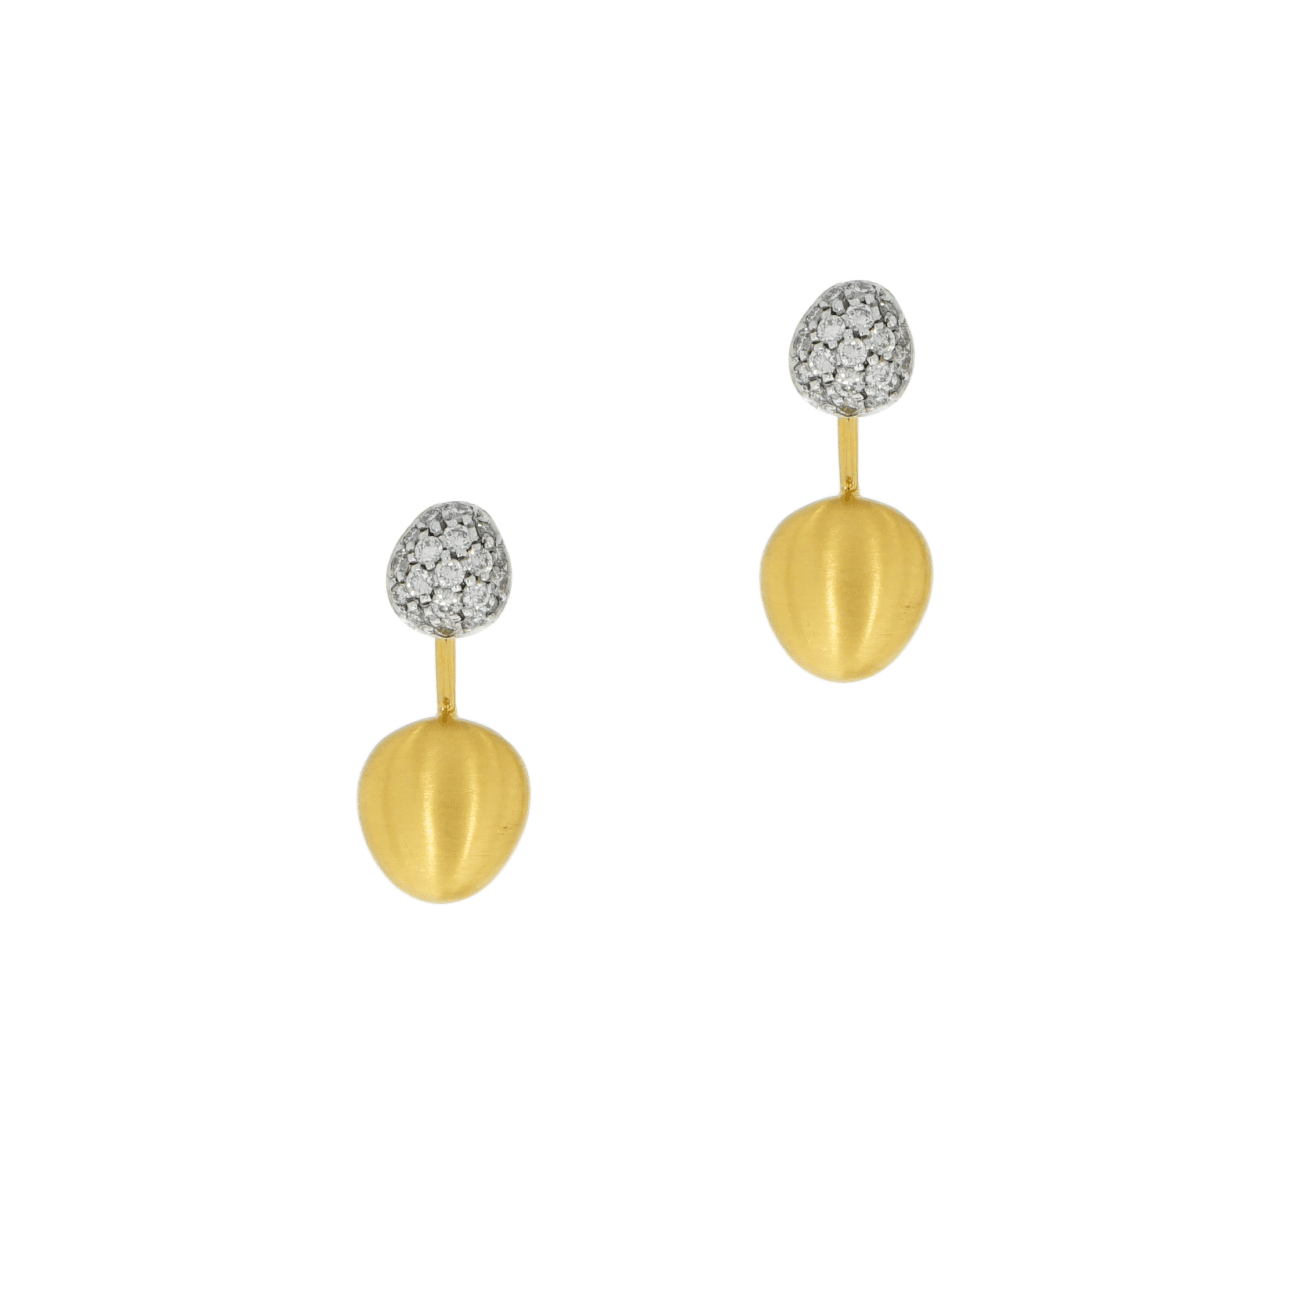 Brumani Jewelry - Pave Diamond Ball with Satin Finish Yellow Gold Dome Earrings | Manfredi Jewels